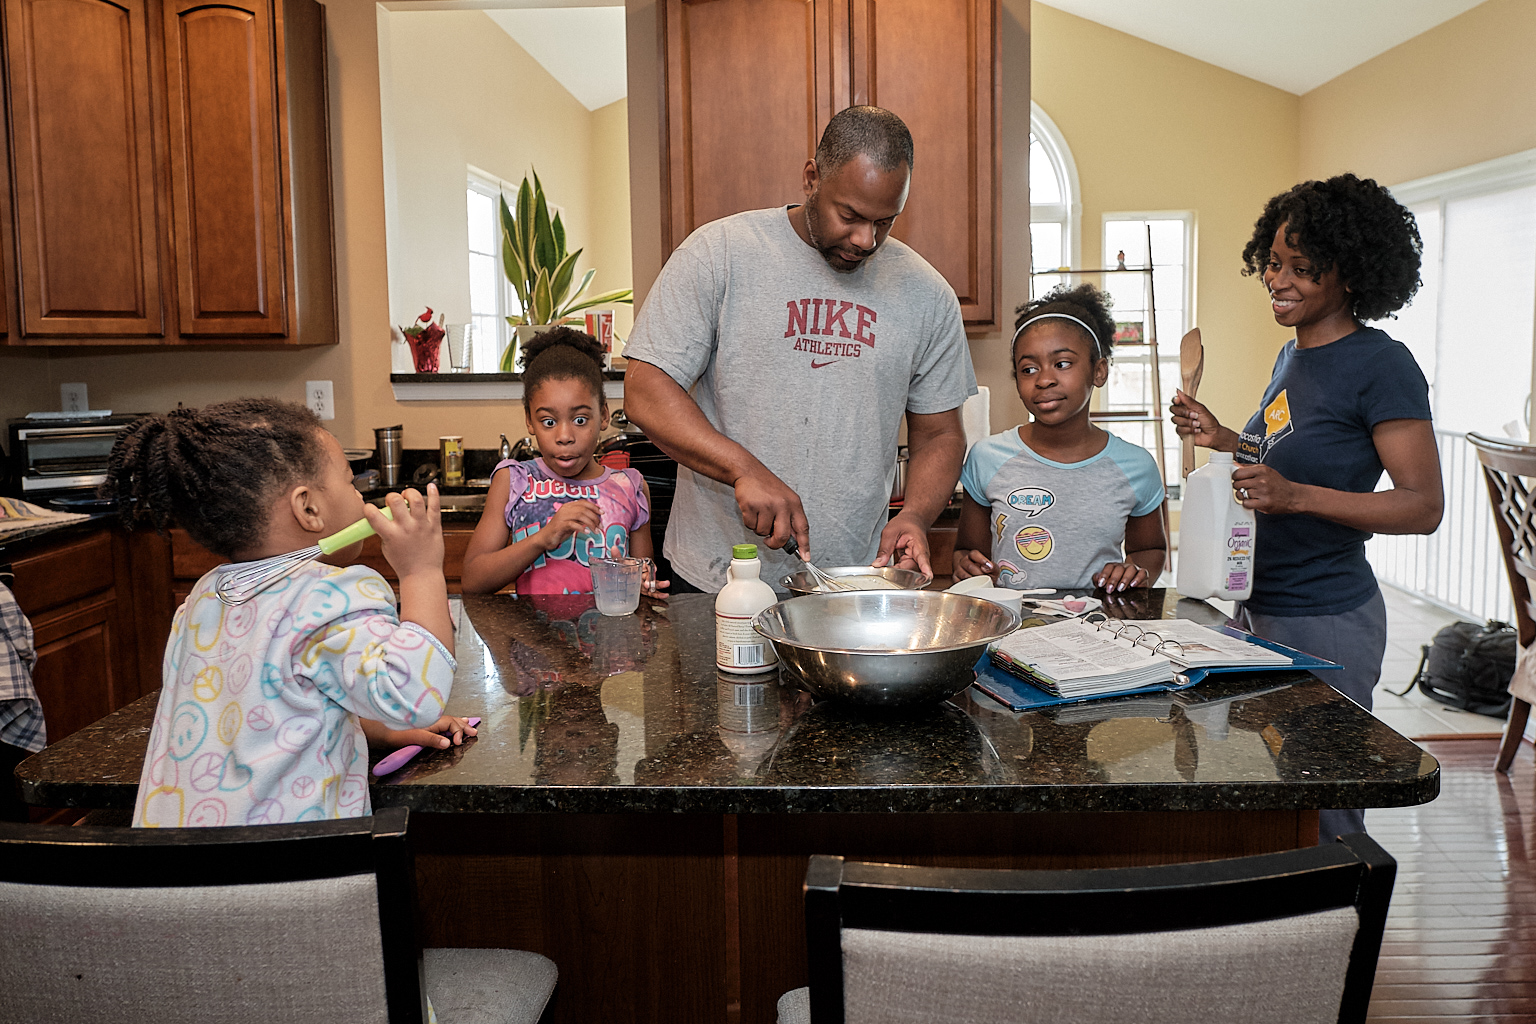 Lenzy_Ruffin_Photograph_Family_Lifestye_2019-04-20-013.jpg